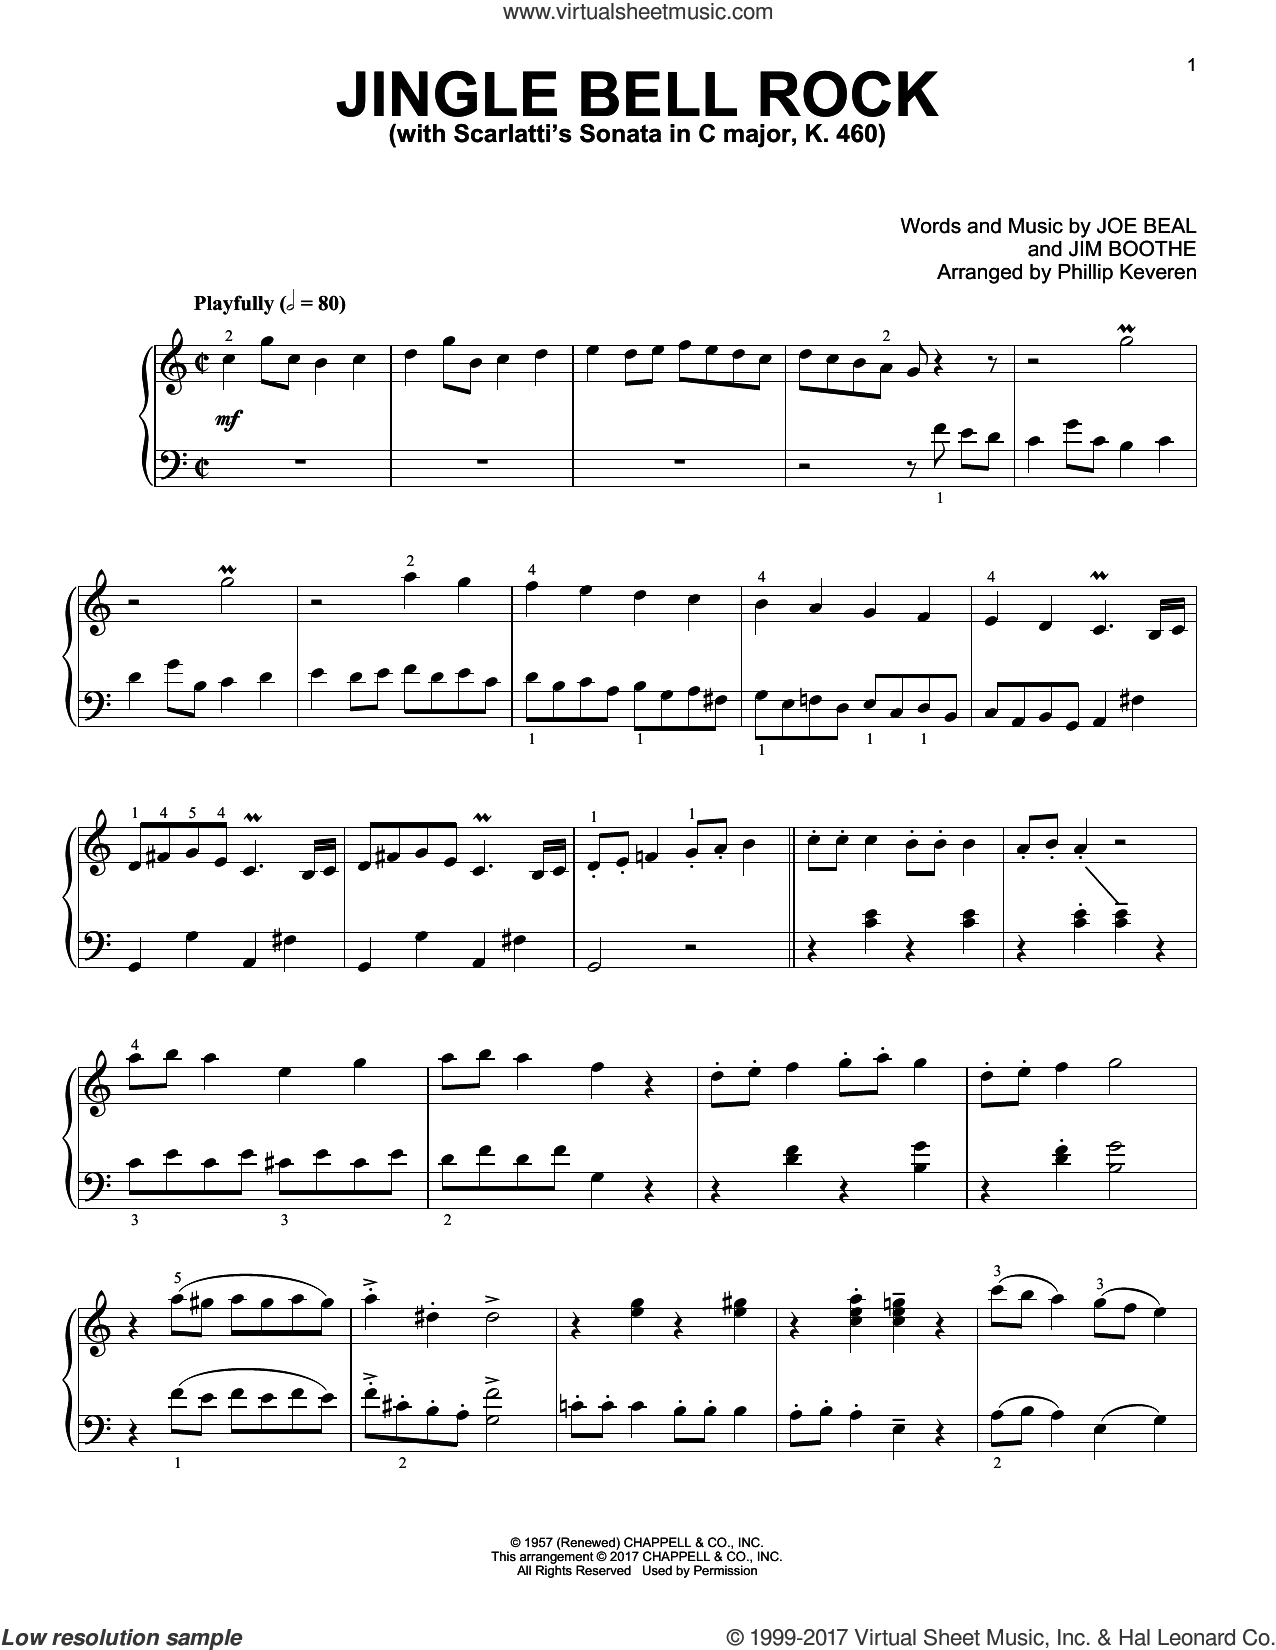 Jingle Bell Rock [Classical version] (arr. Phillip Keveren) sheet music for piano solo by Joe Beal, Phillip Keveren and Jim Boothe, intermediate skill level